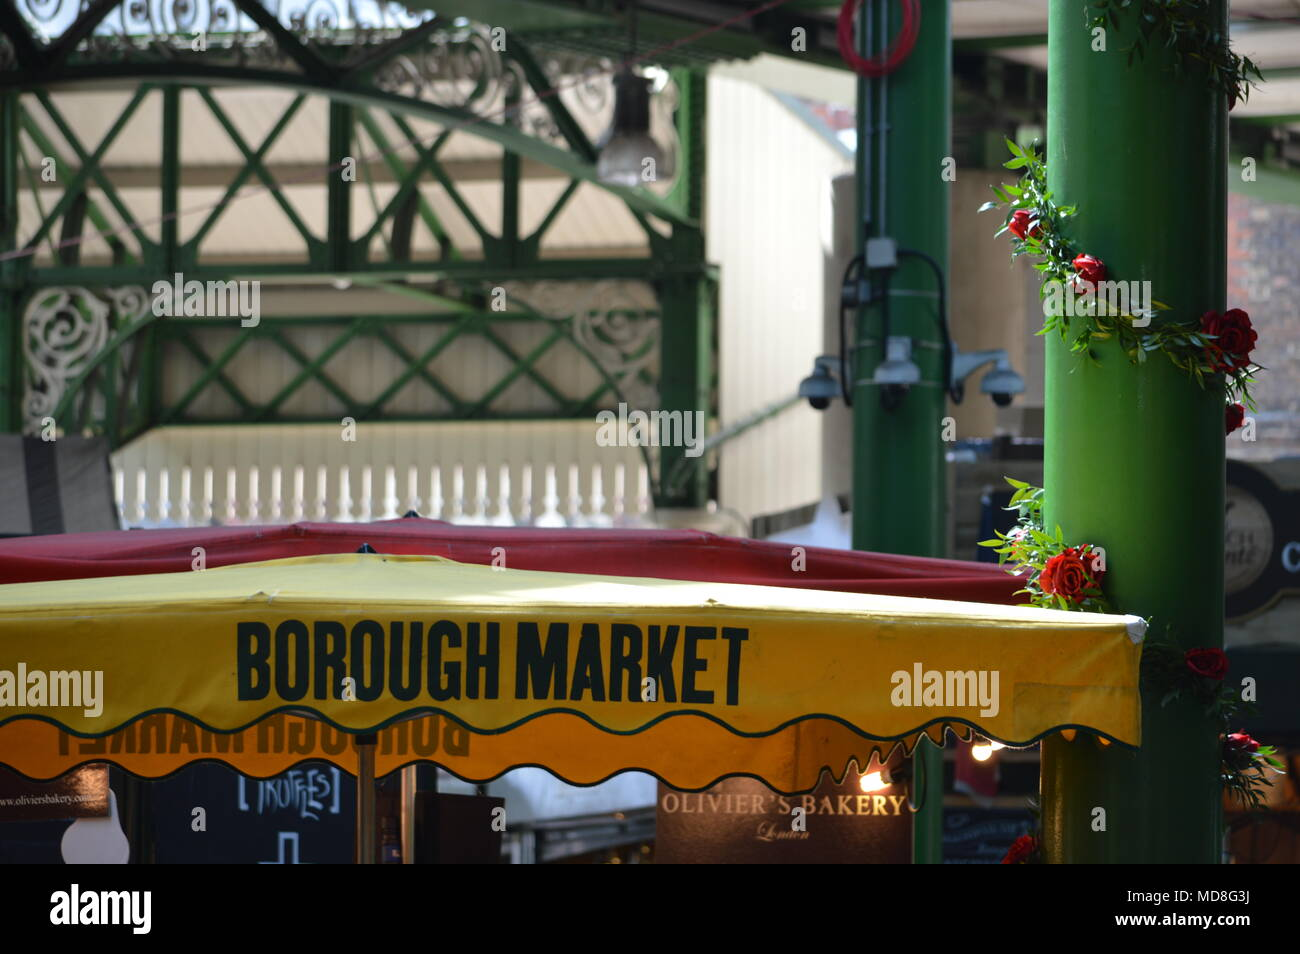 Borough Market, London - Stock Image